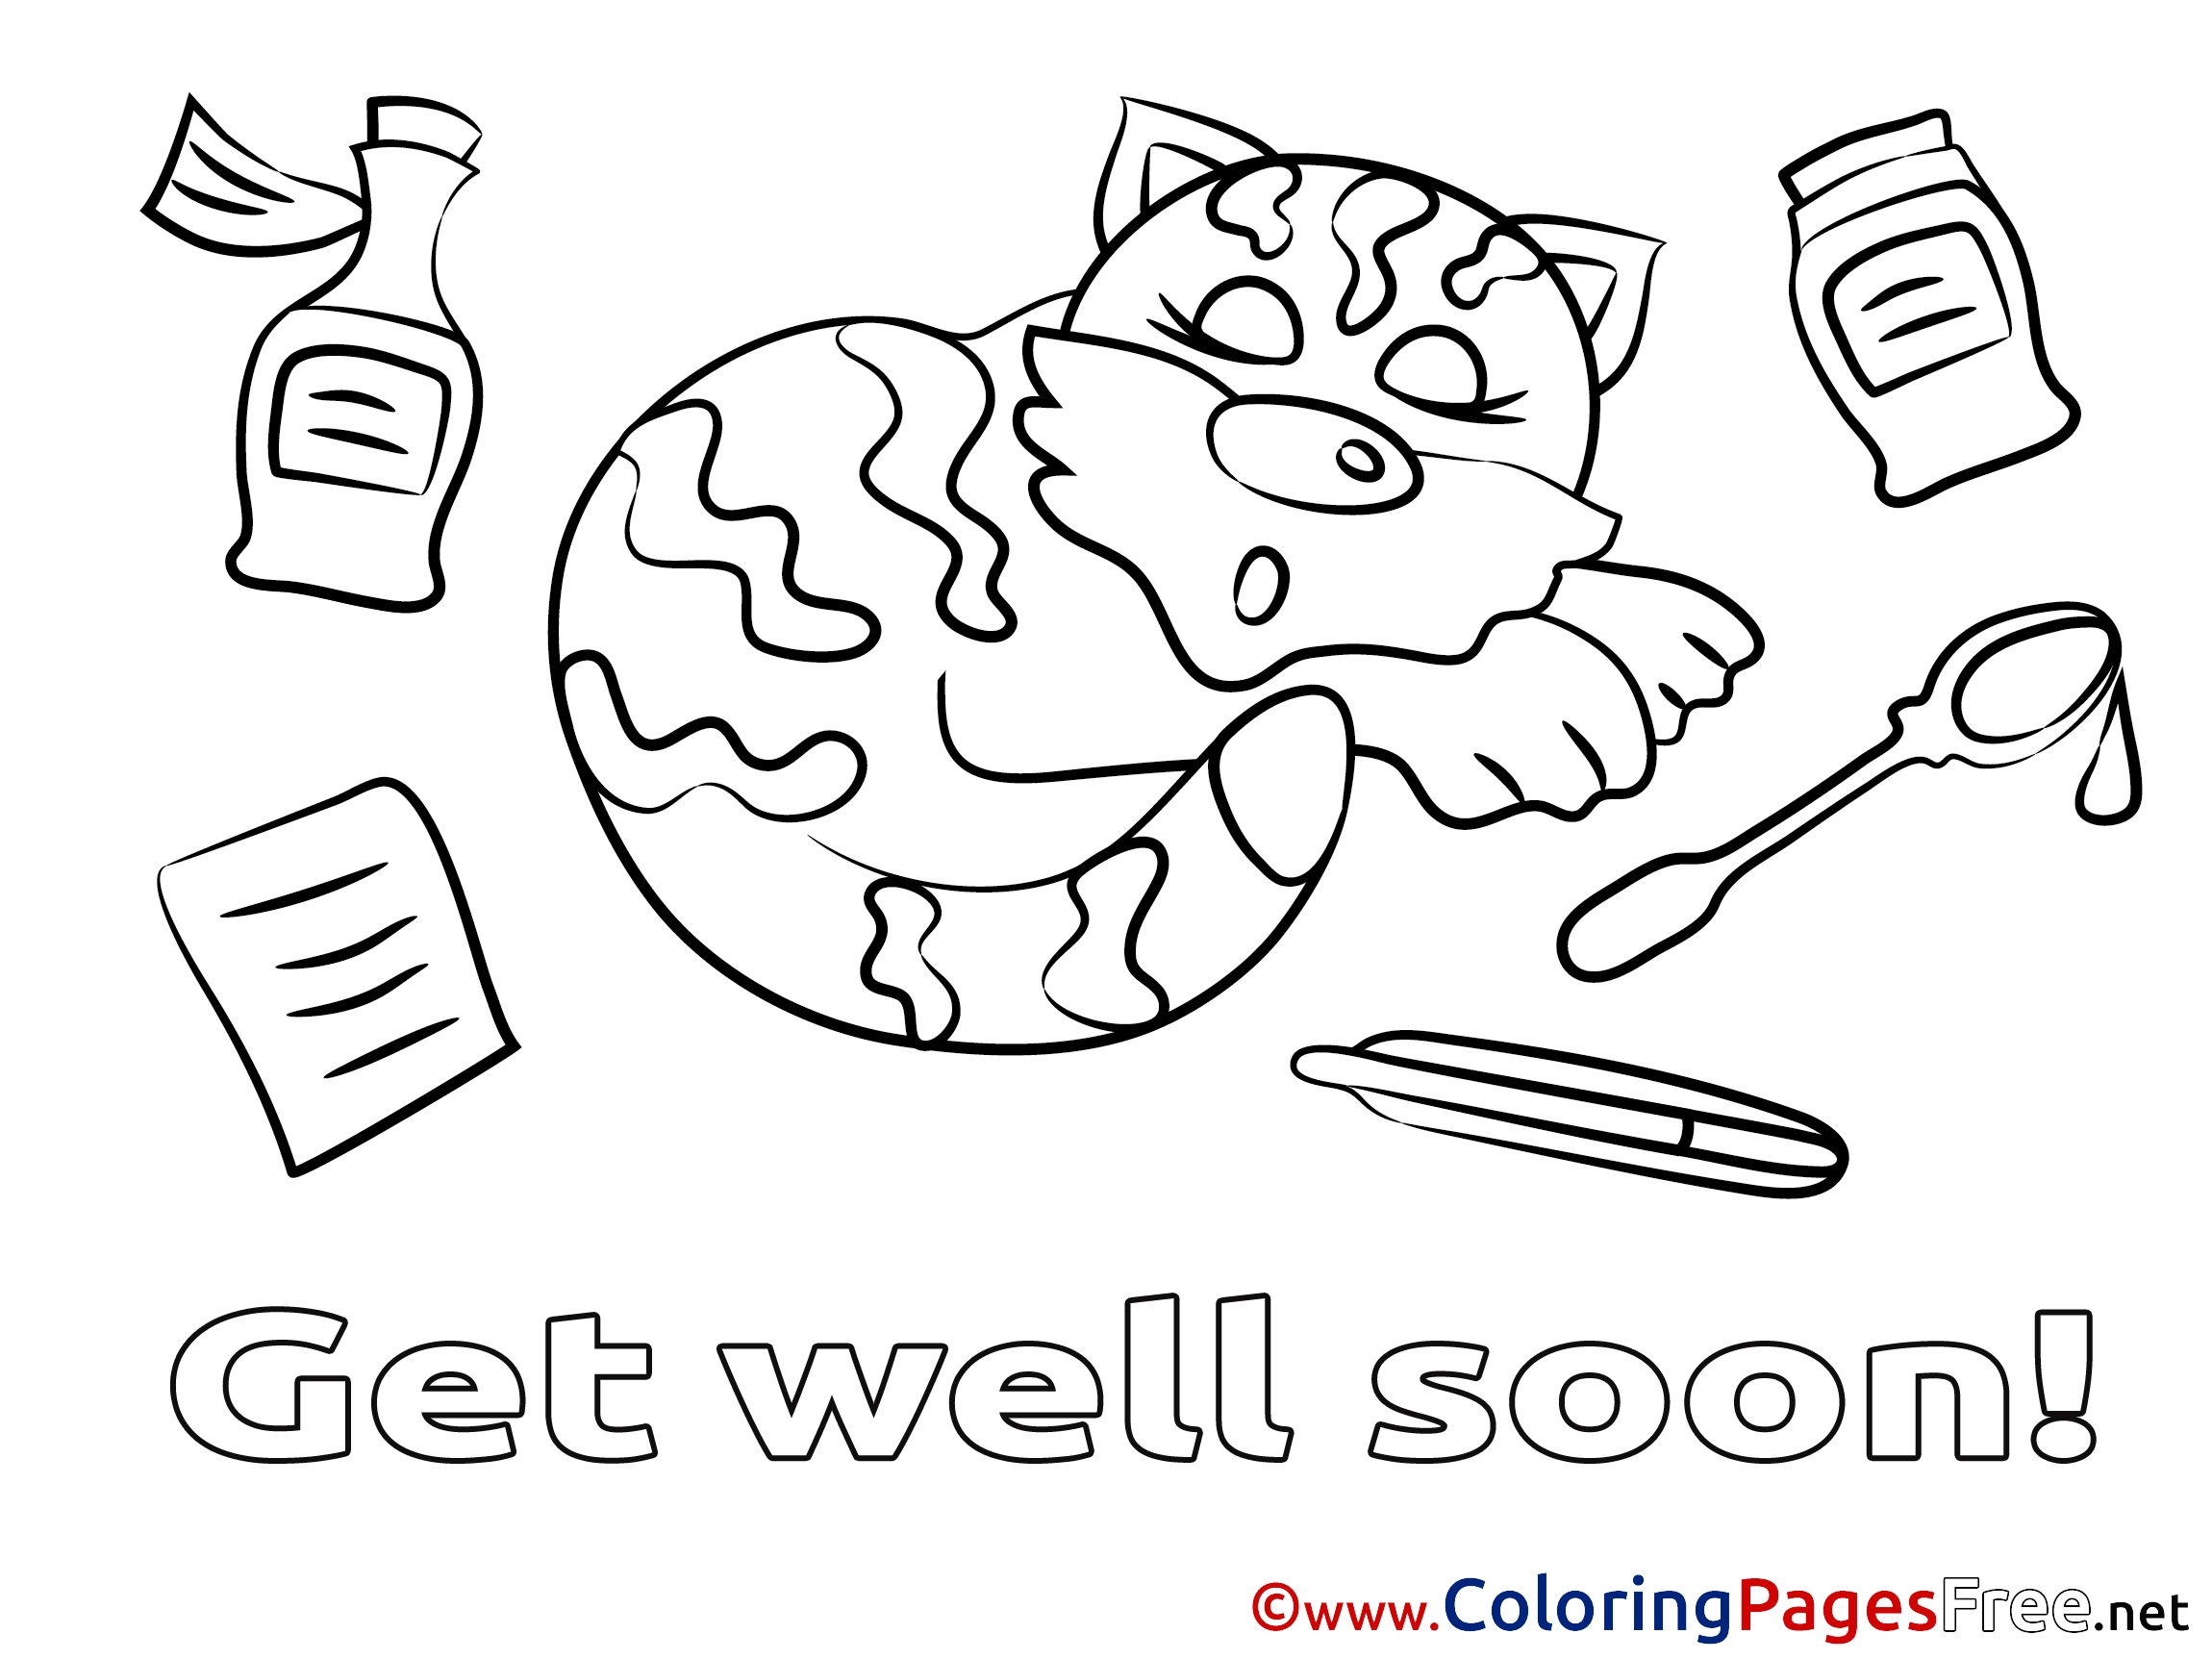 2300x1725 Get Well Soon Coloring Pages With Wallpaper Laptop New Coloring